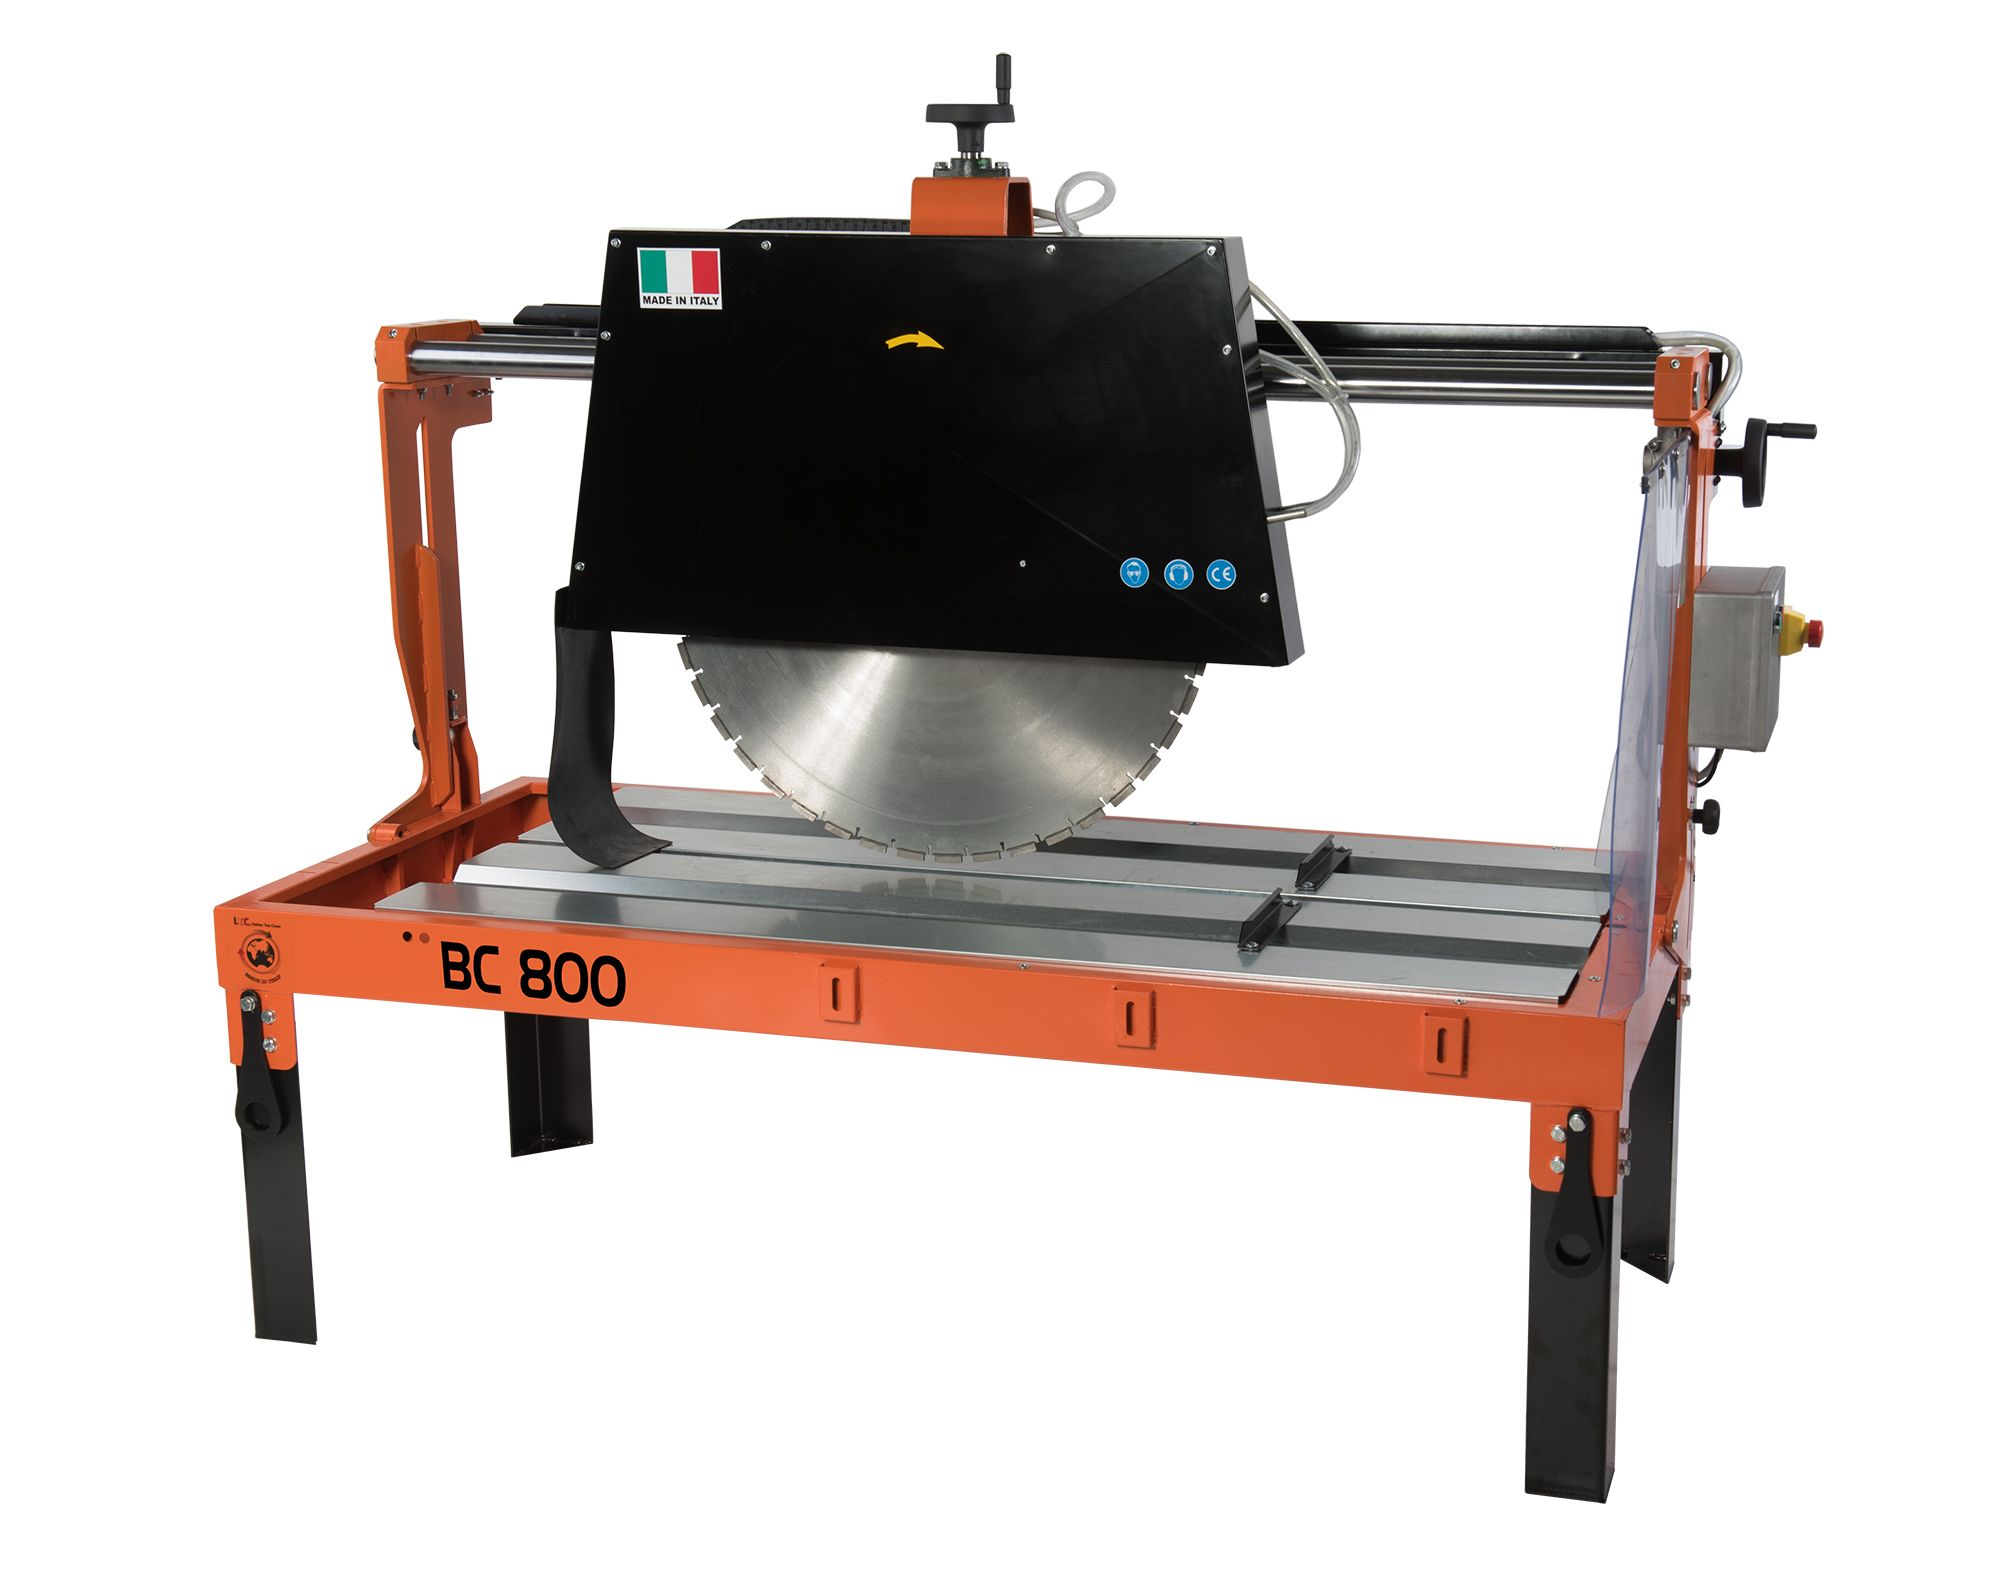 Radial Block Cutter, BC version, designed for cutting blocks in the construction industry.